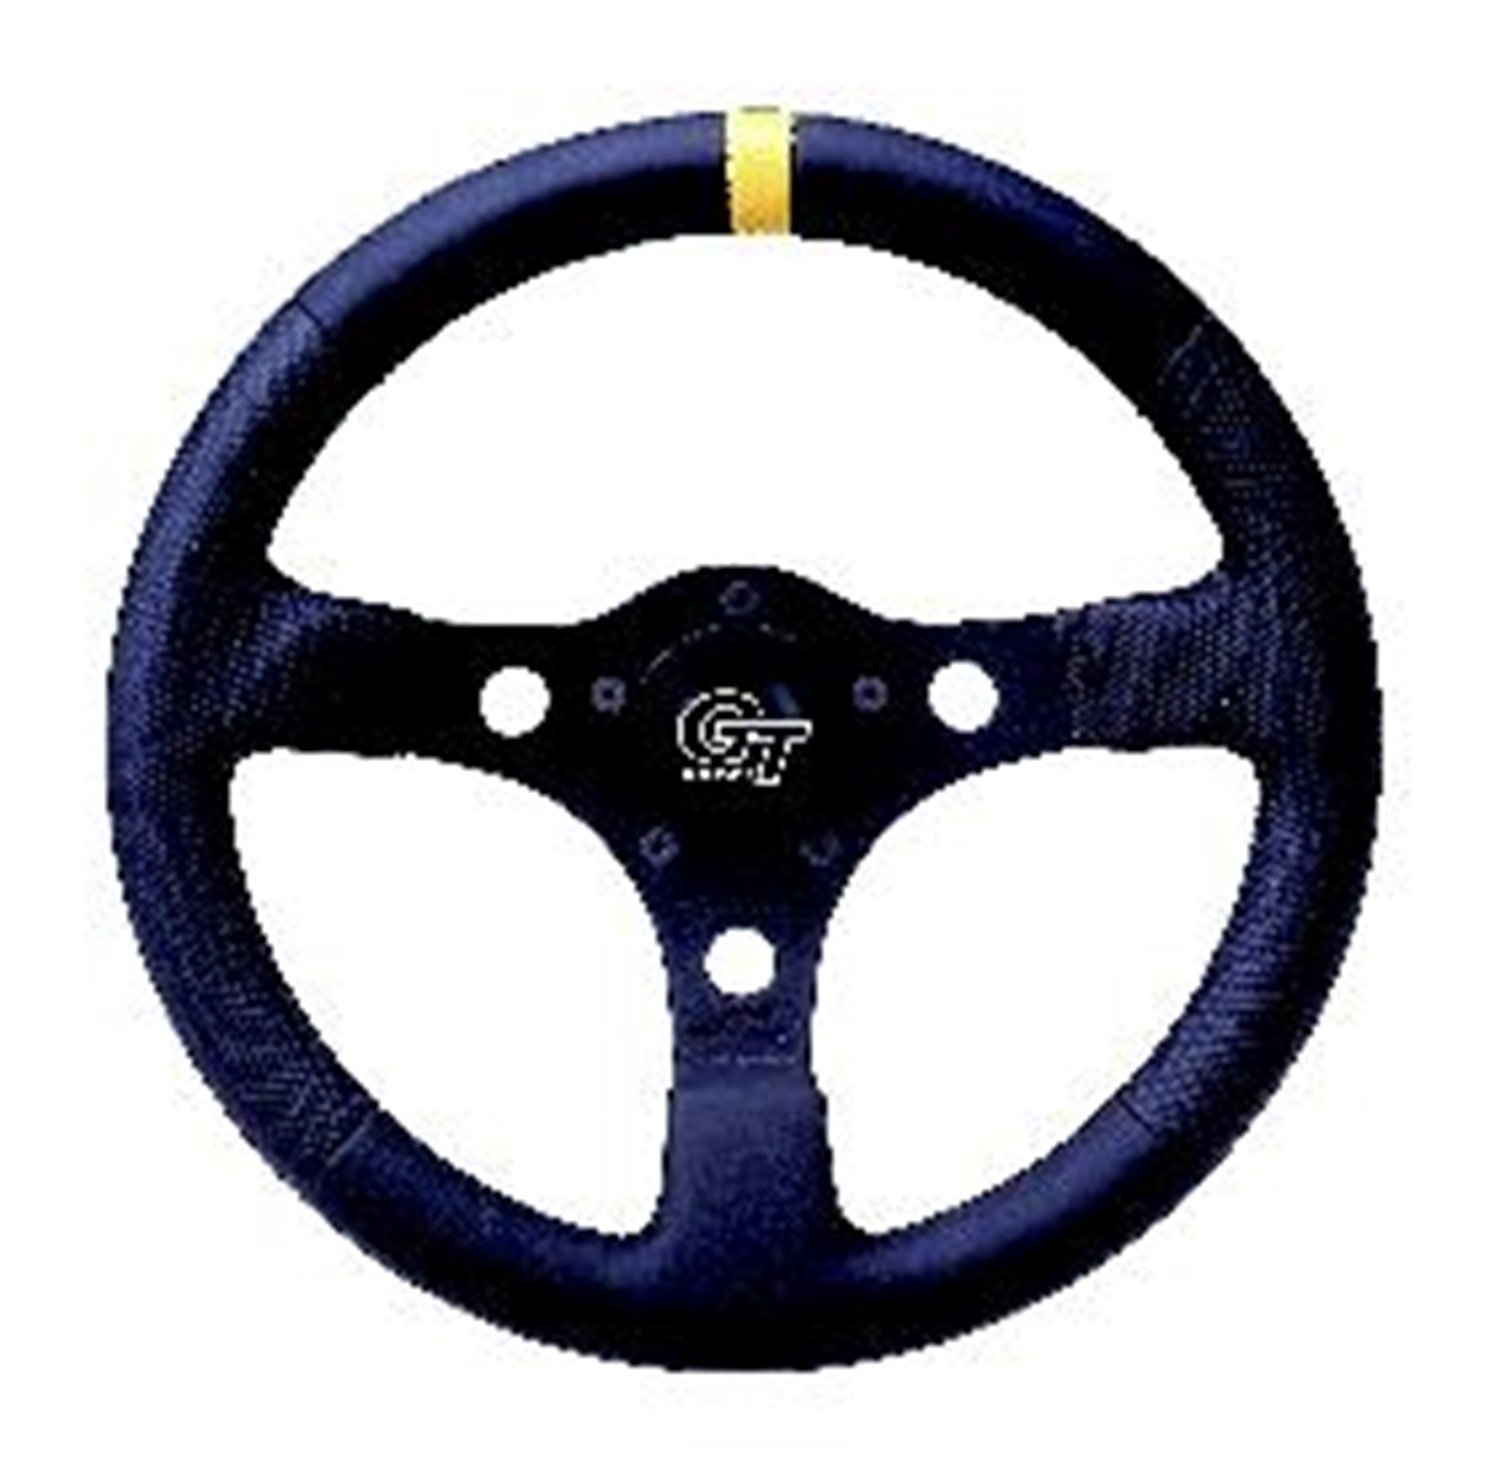 Grant Products 1075 Top Marker Competition Wheel